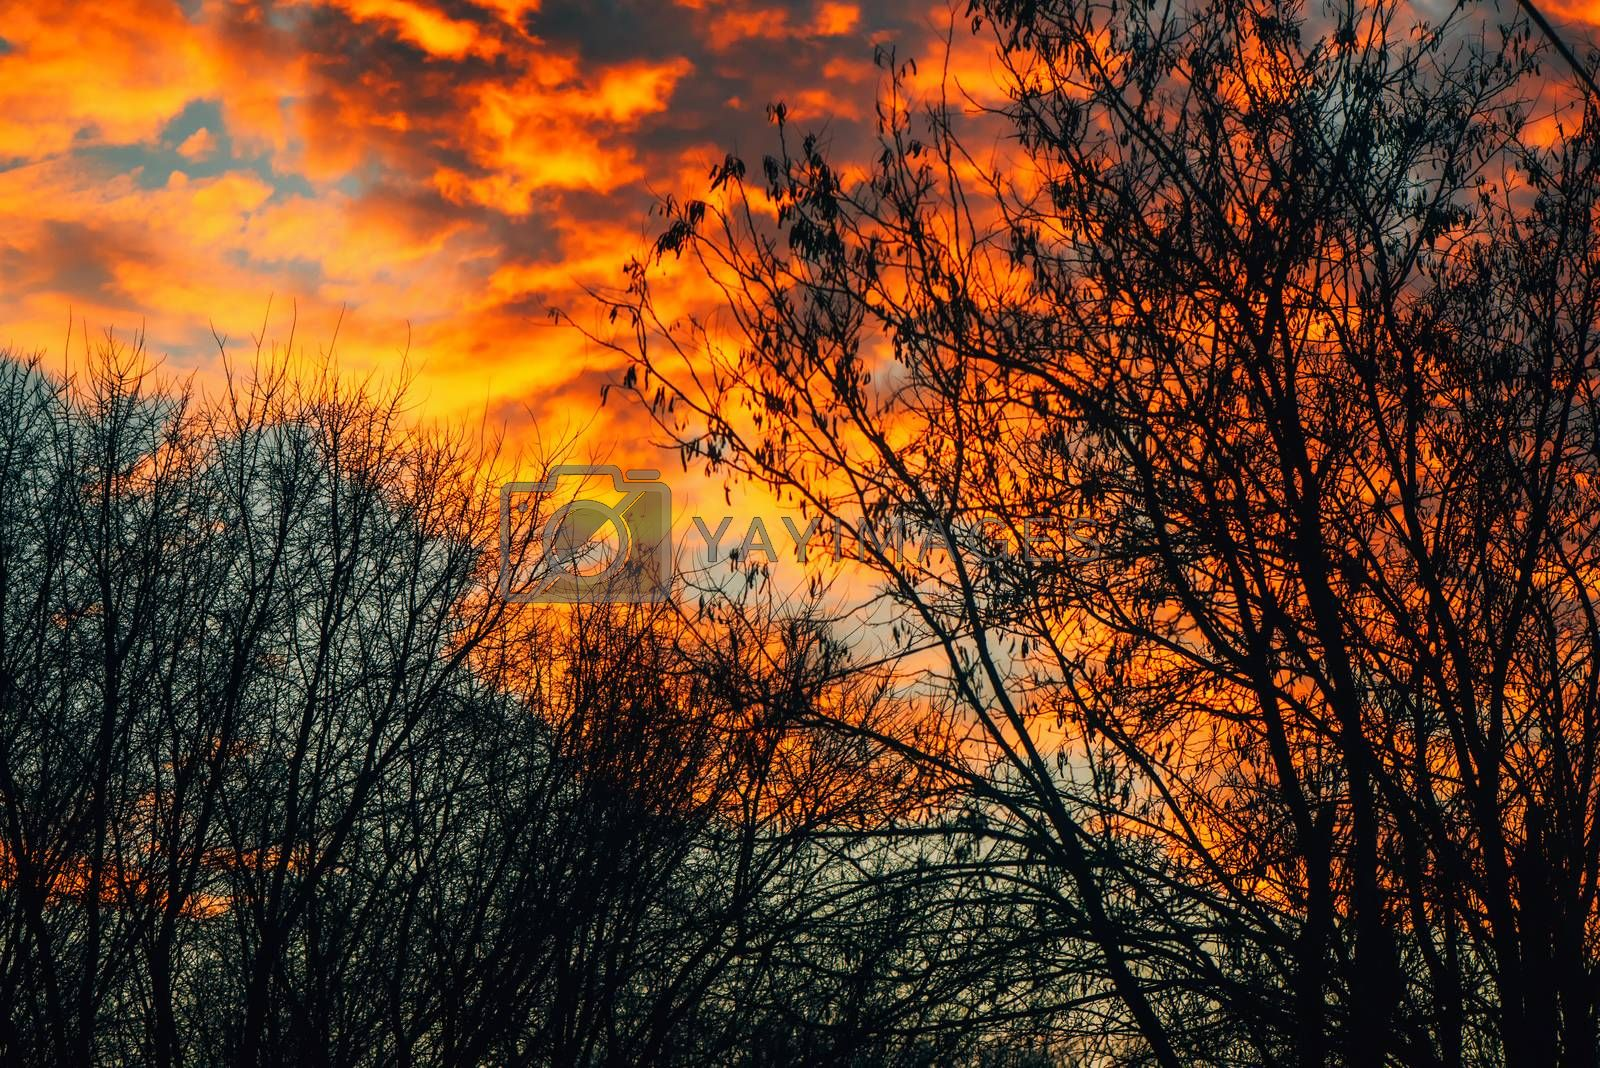 Orange clouds in winter sunset through bare tree branches, beauty in nature